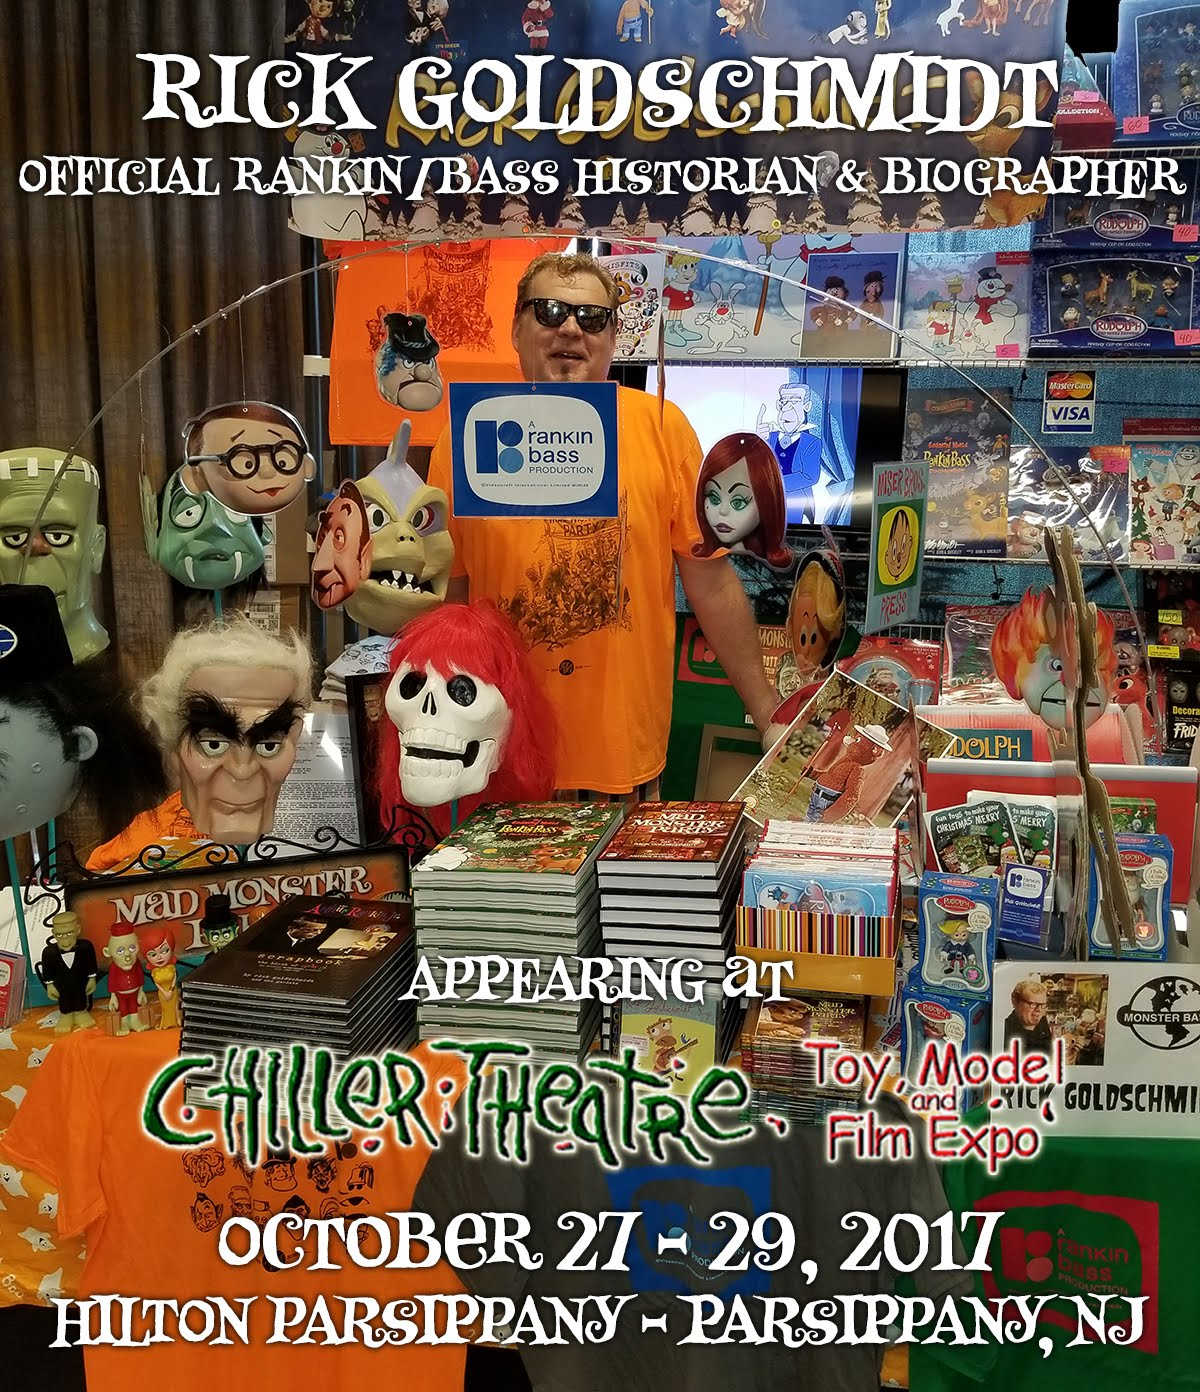 I will return to CHILLER THEATRE Halloween edition October 27-29, 2017